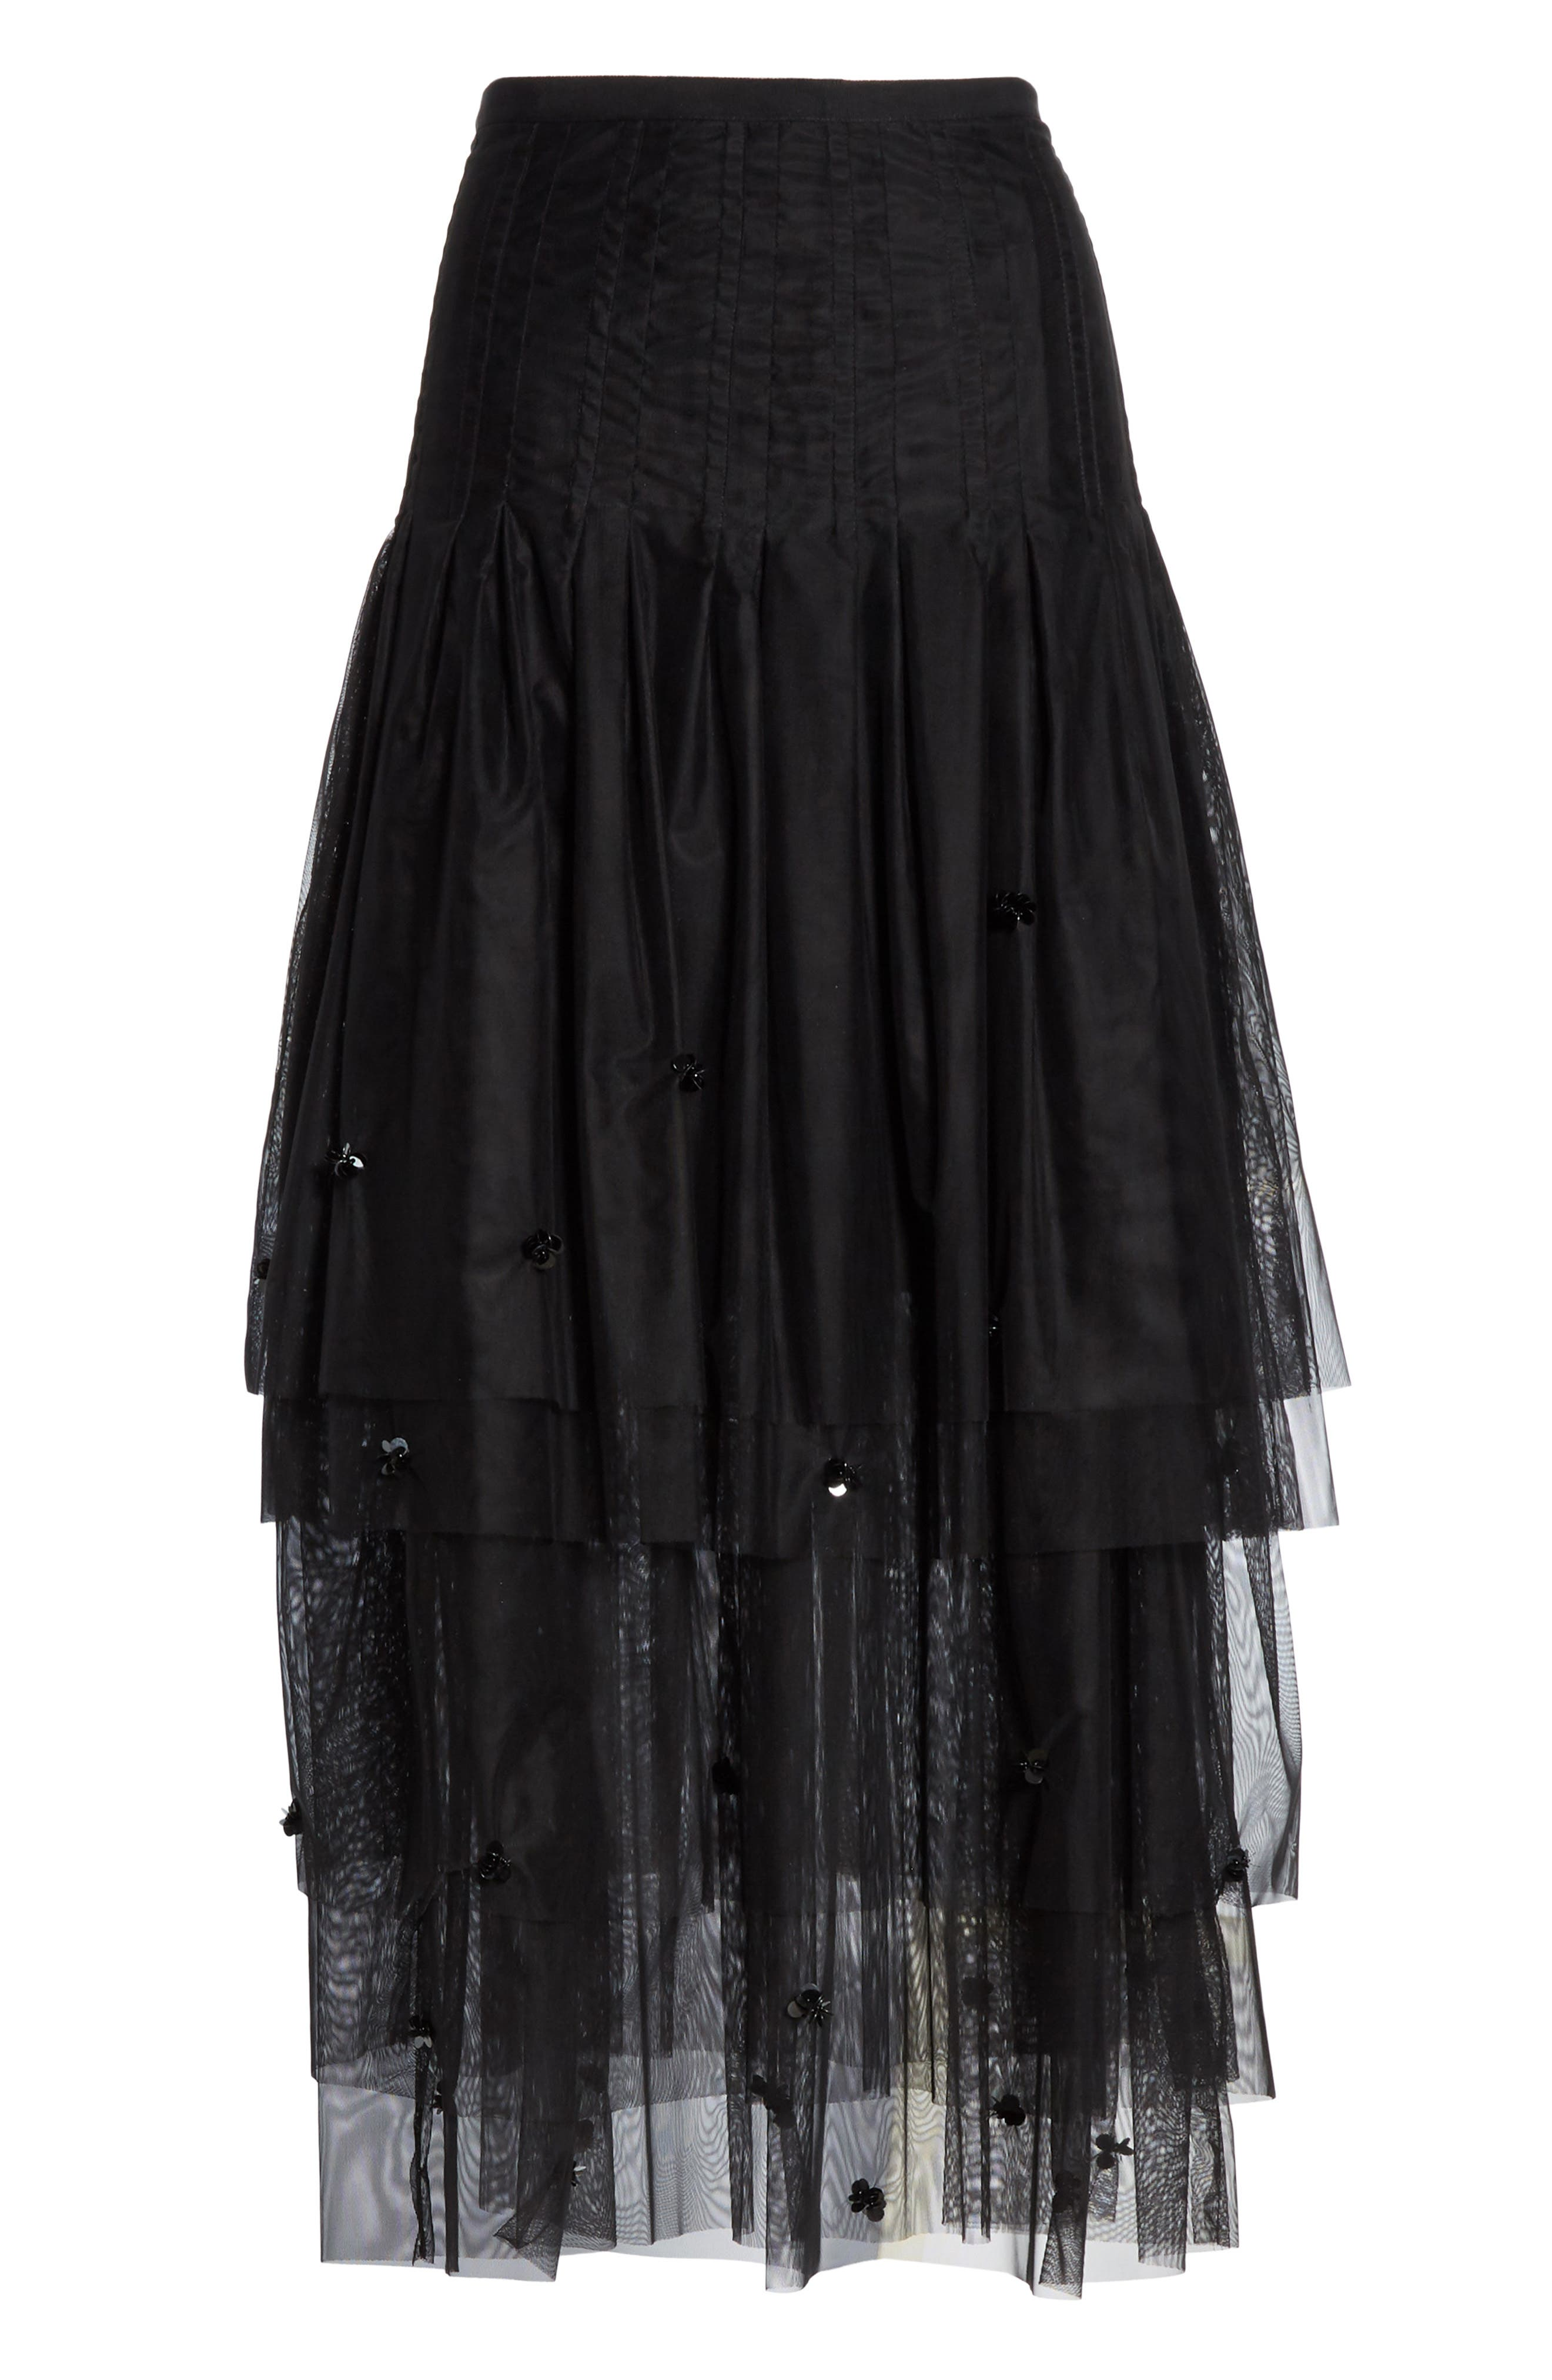 3D Sequin Tulle Maxi Skirt,                             Alternate thumbnail 3, color,                             NERO